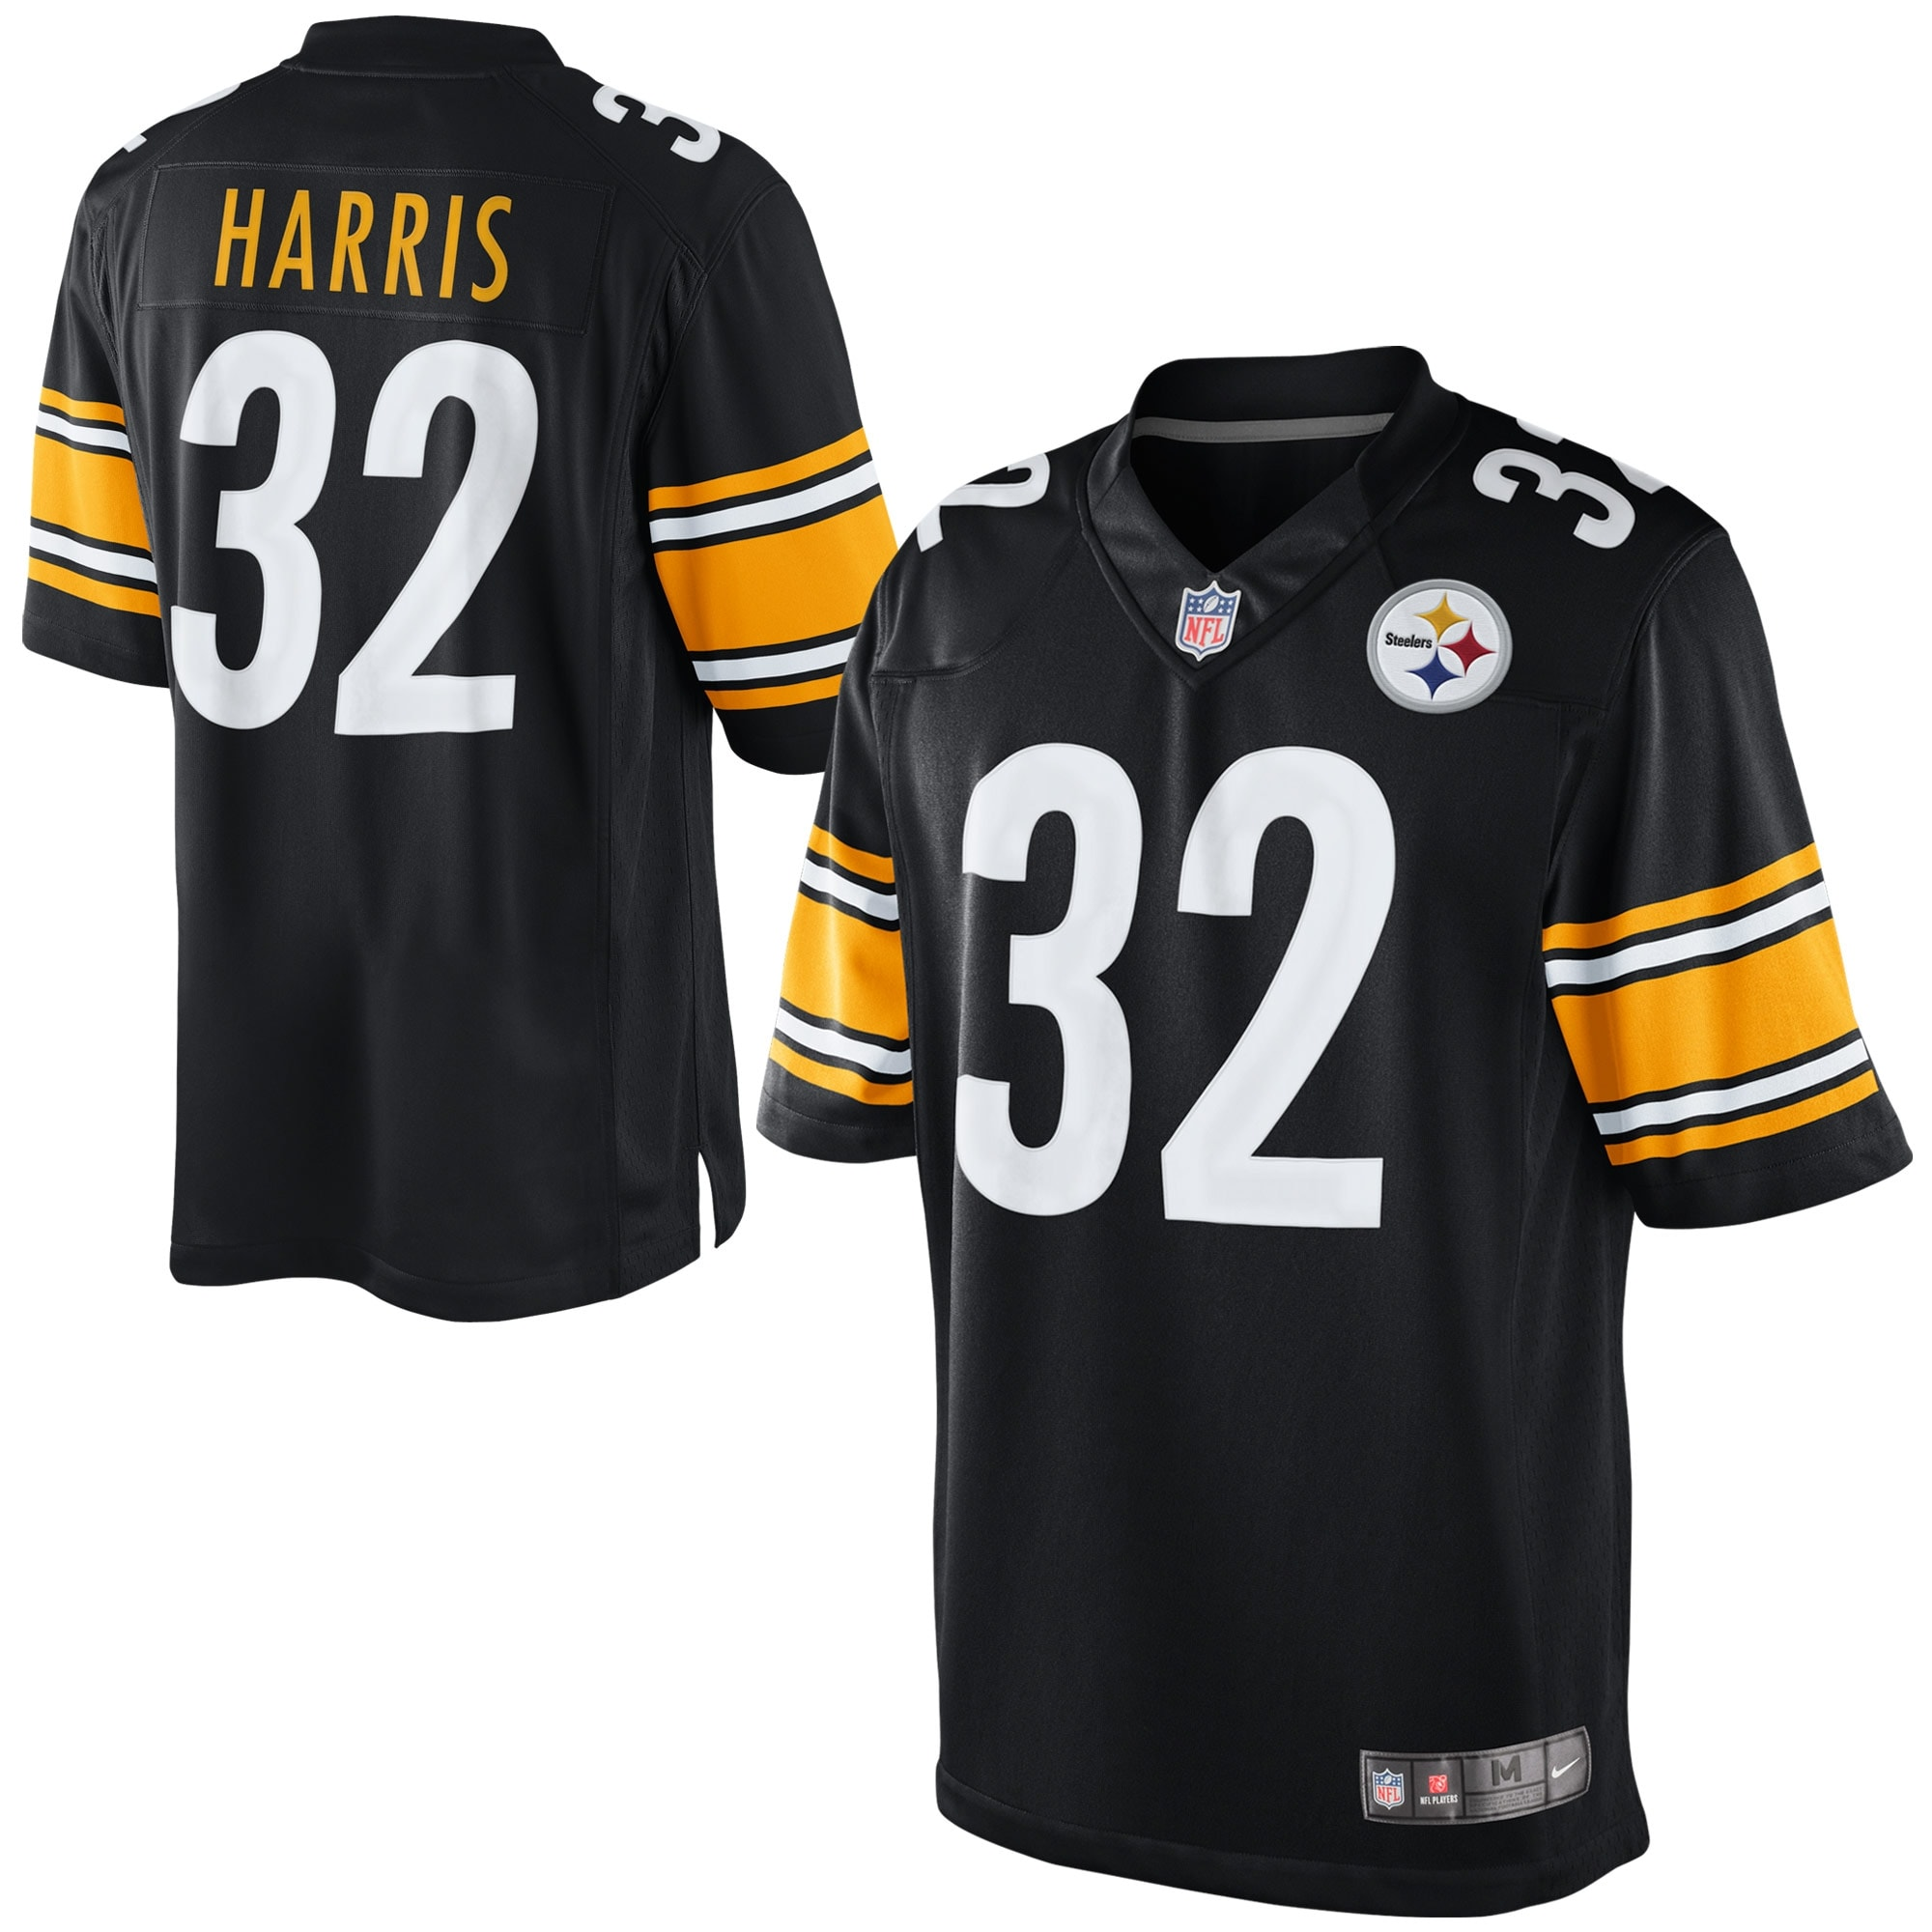 Franco Harris Pittsburgh Steelers Nike Retired Player Limited Jersey - Black